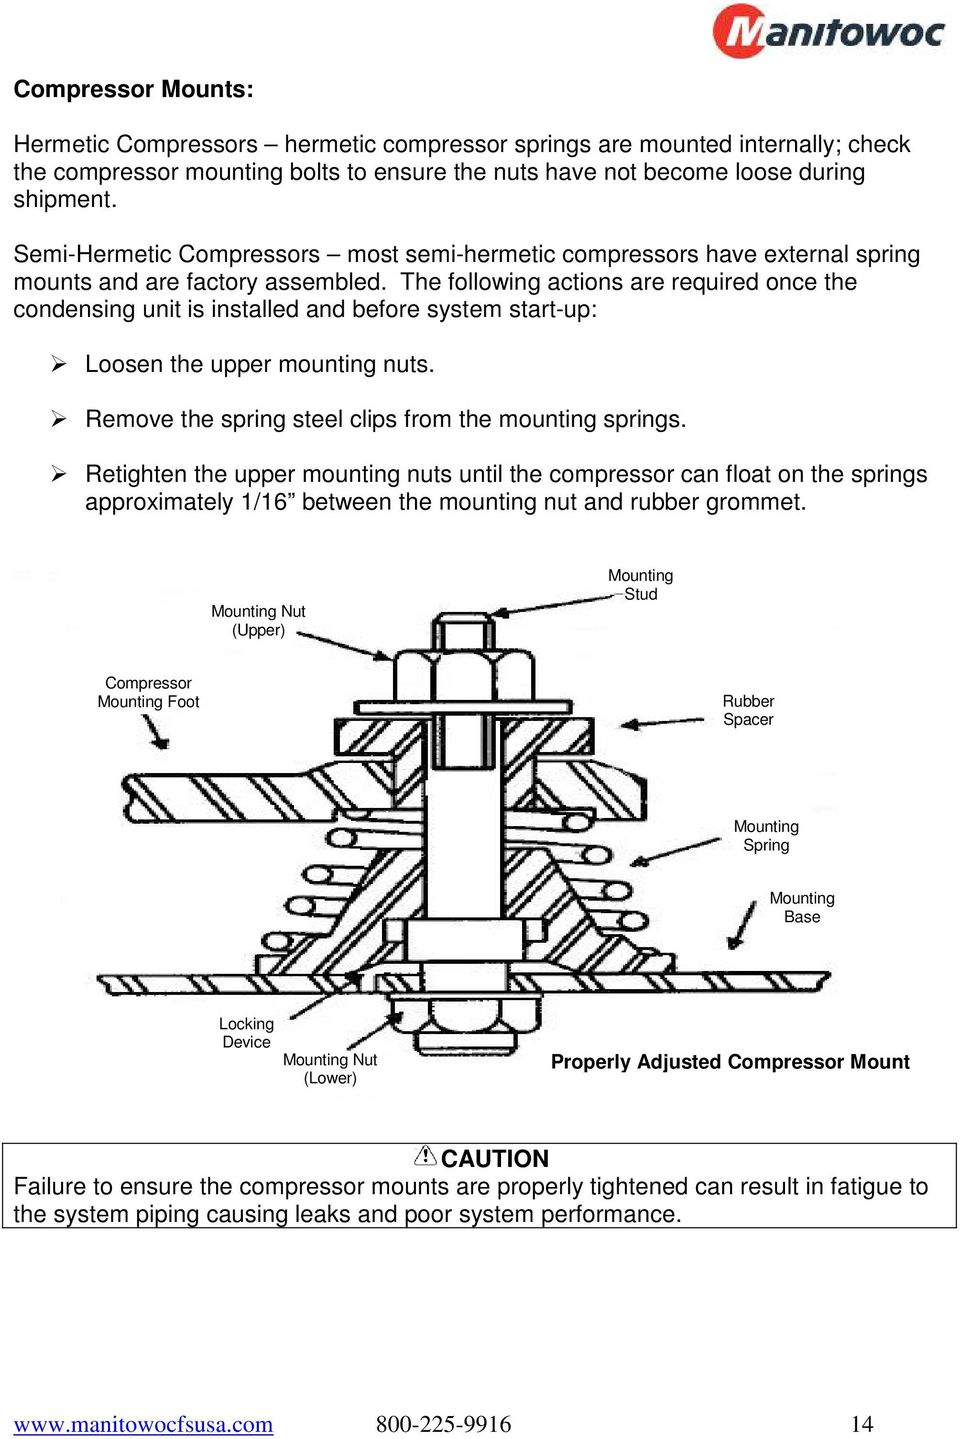 Refrigeration System Installation Operation Manual Pdf Hermetic Compressor Wiring Diagram The Following Actions Are Required Once Condensing Unit Is Installed And Before Start